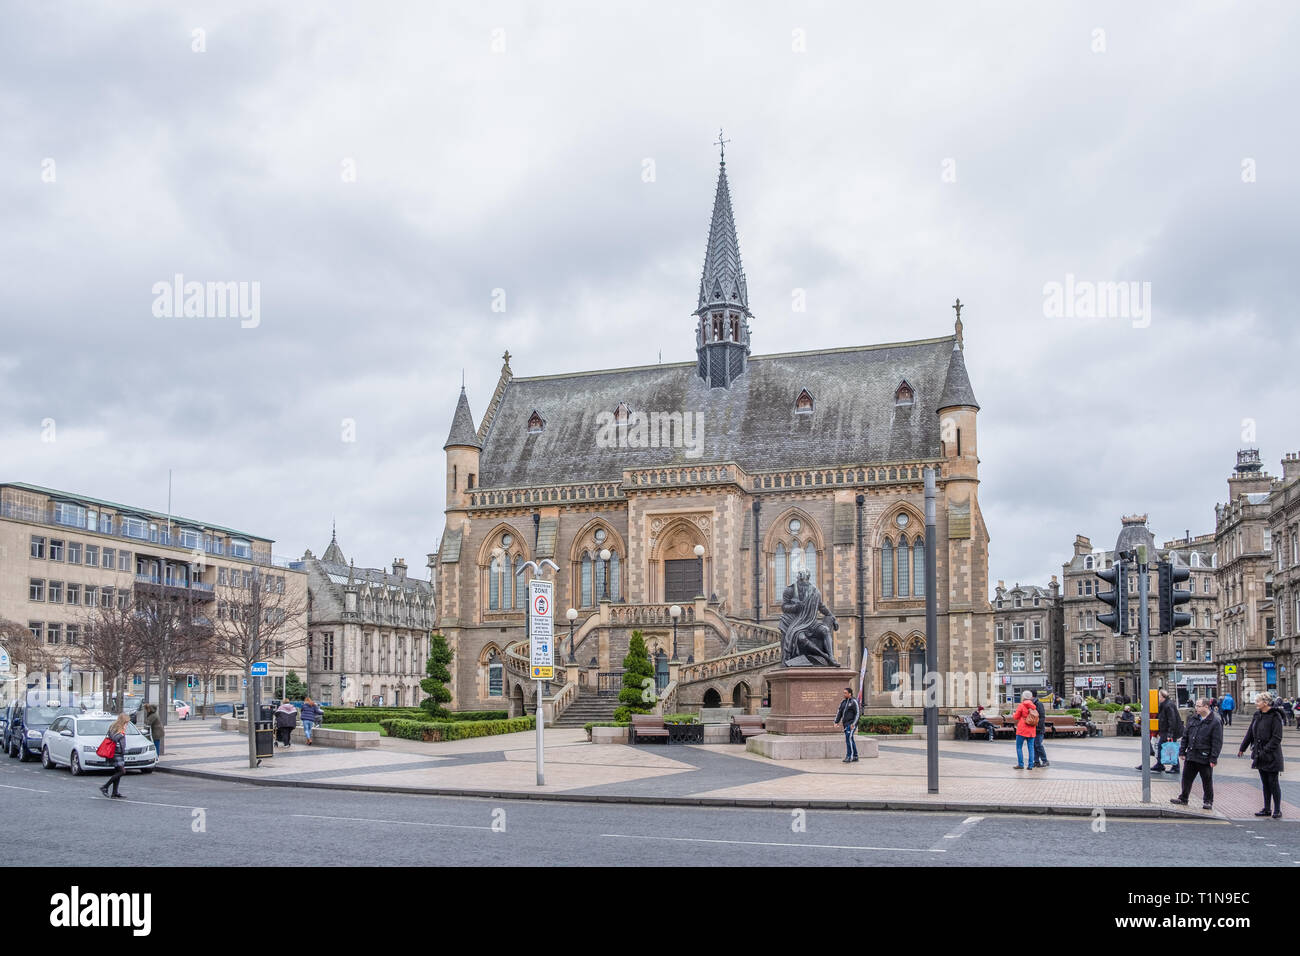 Dundee, Scotland, UK - March 22, 2019: The impressive architecture of the McManus Galleries at the top of Commercial Street Dundee Scotland - Stock Image